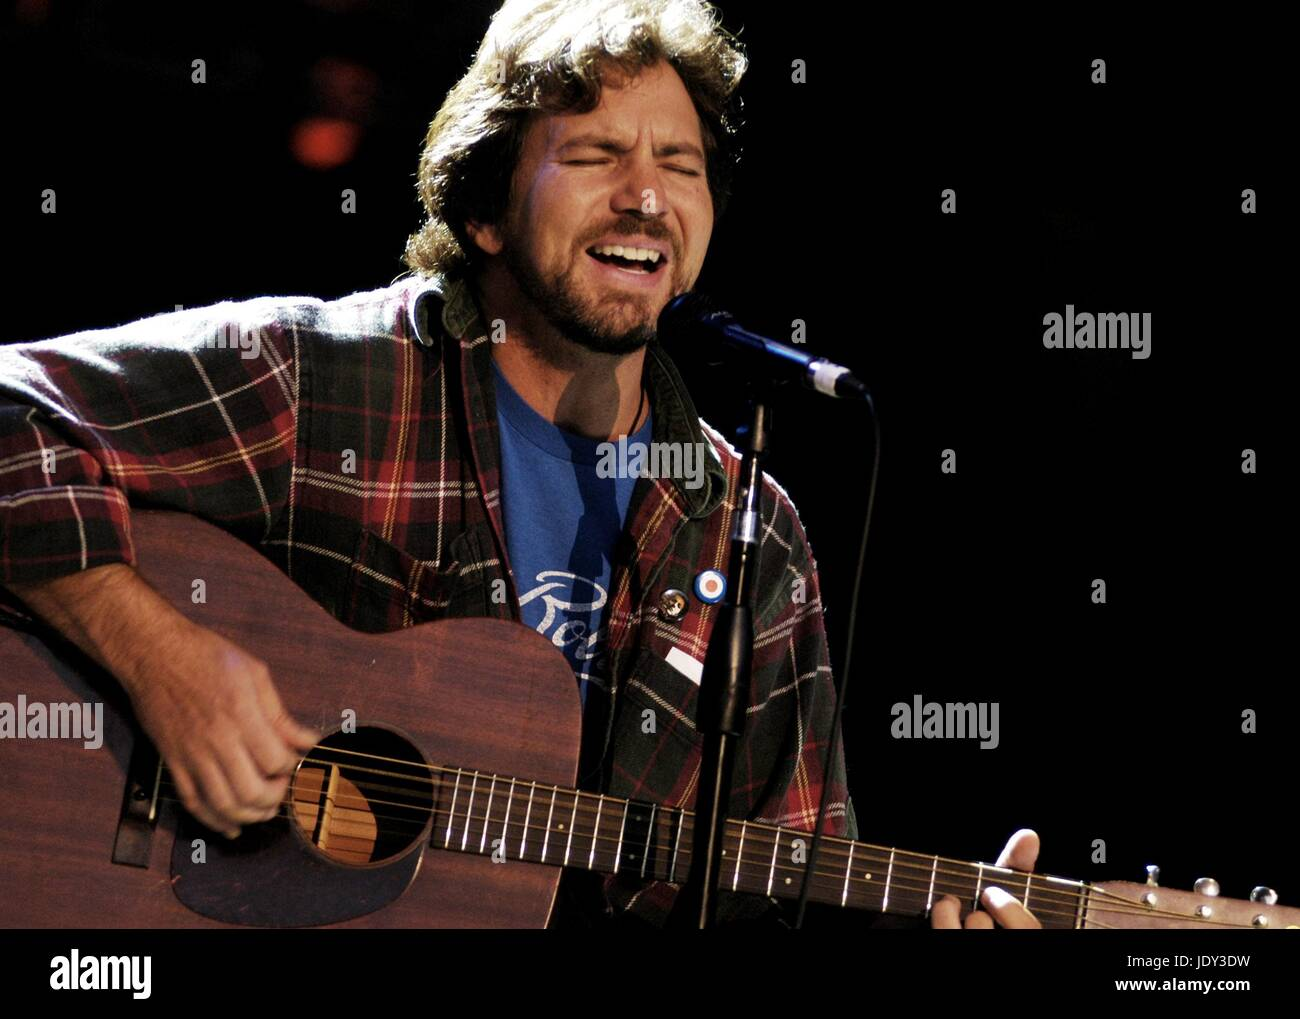 Eddie Vedder of Pearl Jam performs a solo acoustic set at the Bridge